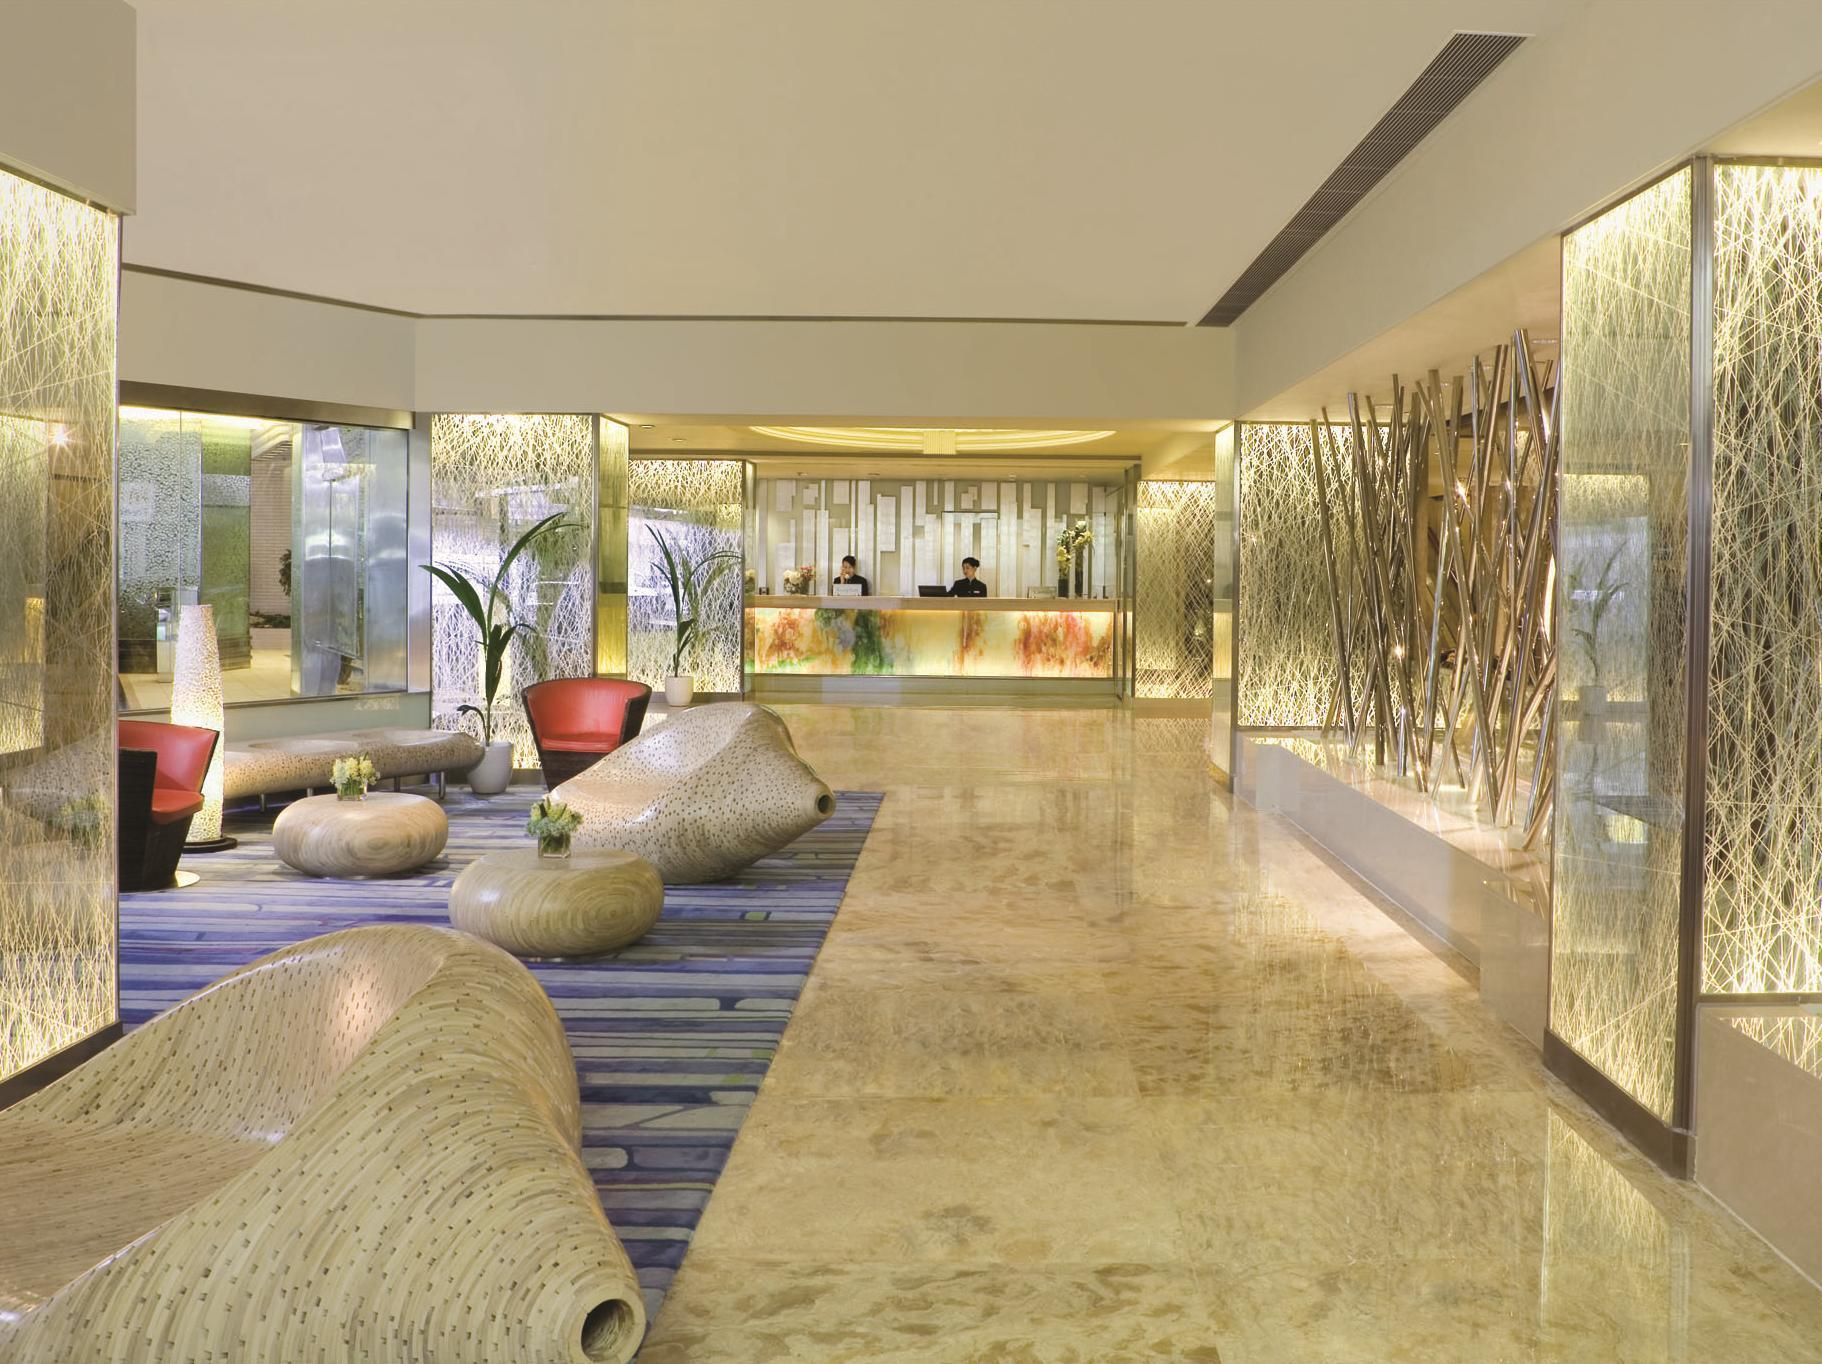 Regal Design Regal Oriental Hotel In Hong Kong - Room Deals, Photos & Reviews